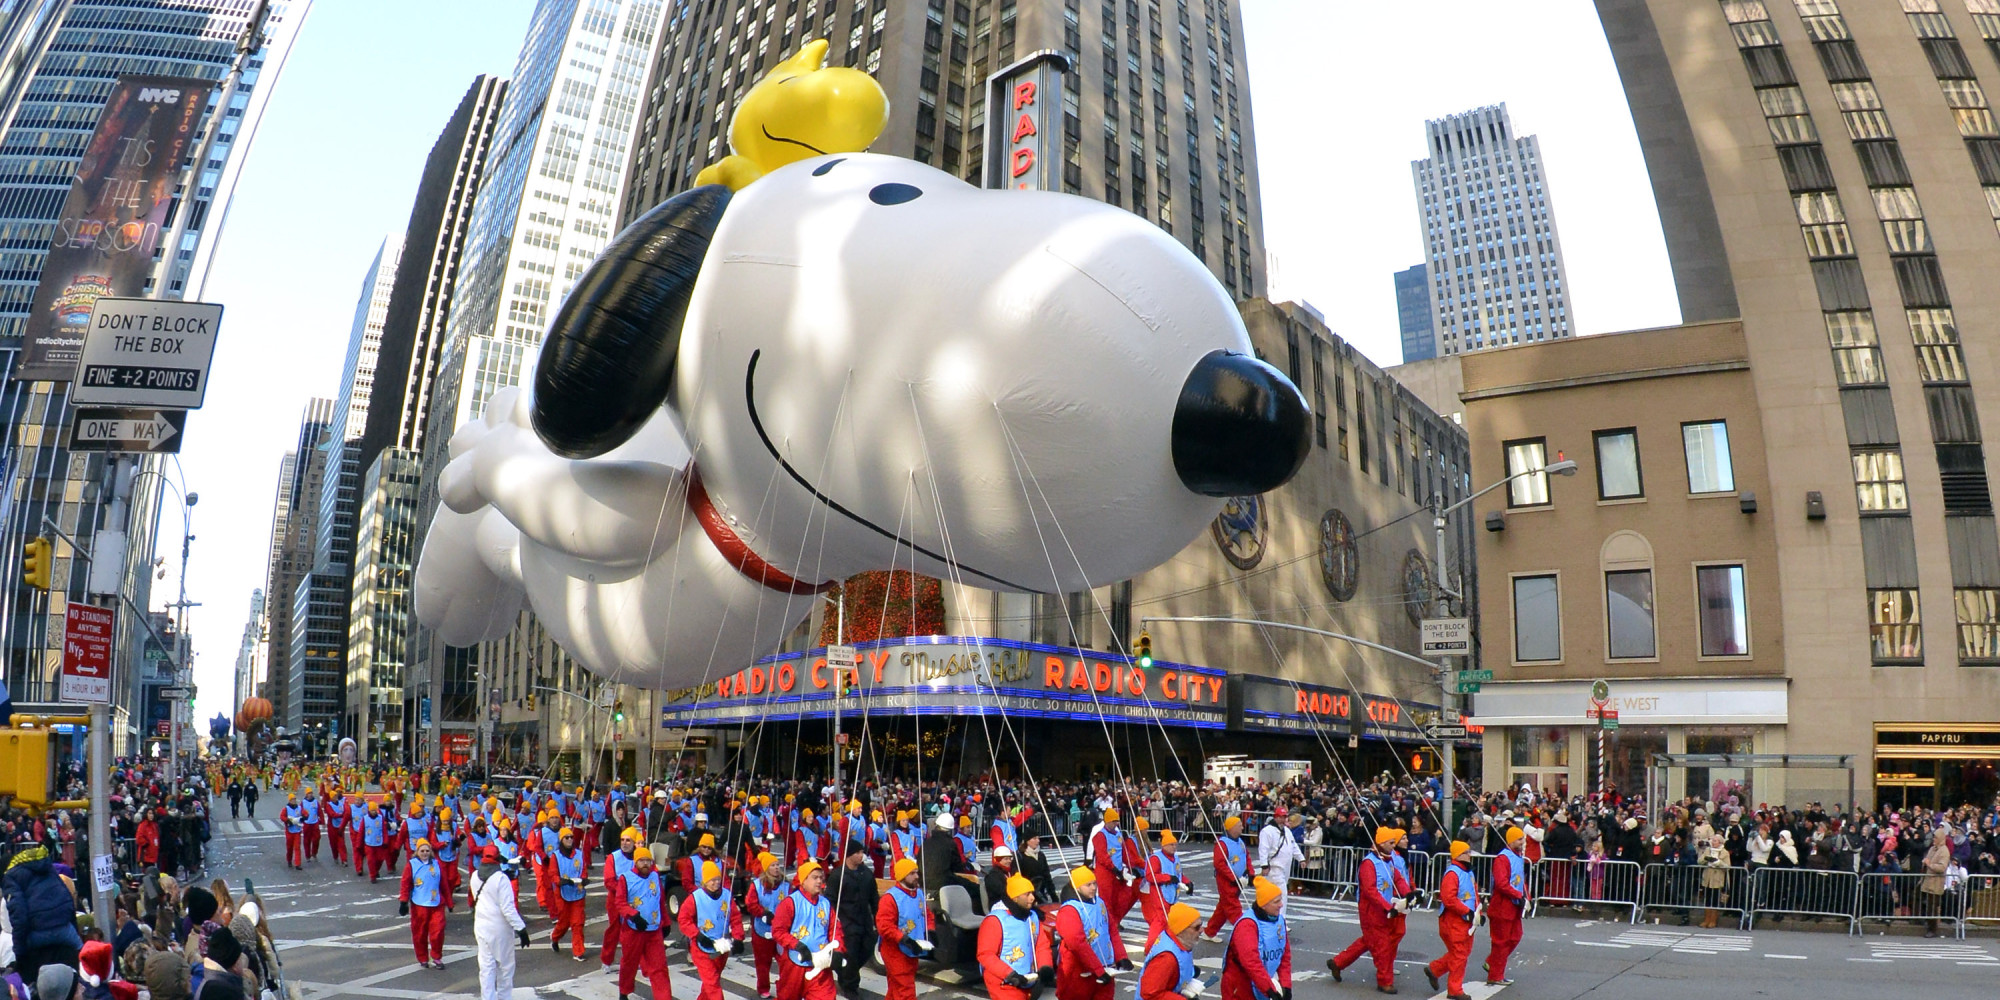 NEW YORK, NY - NOVEMBER 28:  (EDITOR'S NOTE: Image was shot with a fisheye lens) Snoopy makes his way down Avenue of the Americas during the 87th Macy's Thanksgiving Day Parade on November 28, 2013 in New York City.  (Photo by Neilson Barnard/Getty Images)